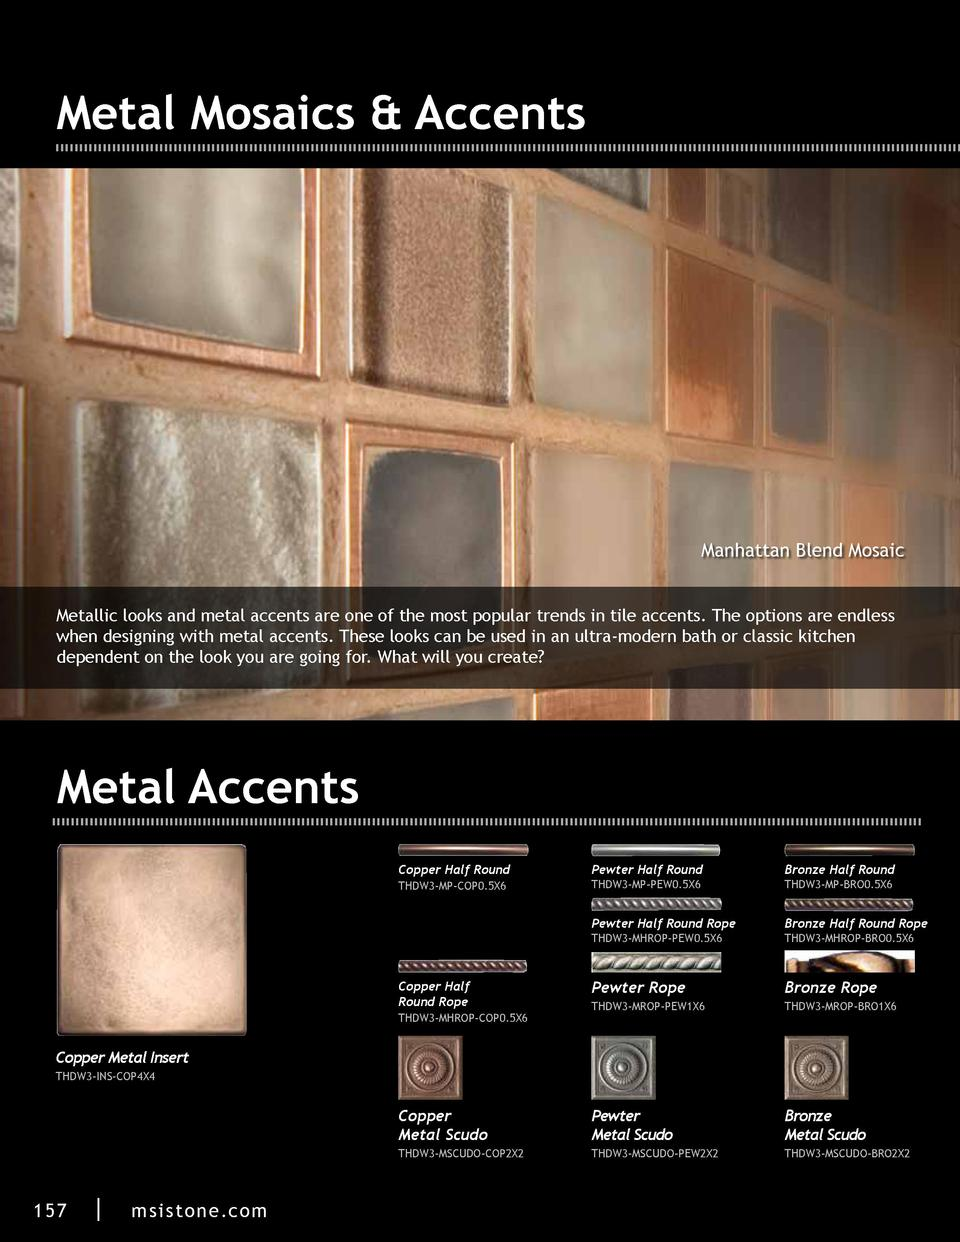 Metal Mosaics   Accents  Manhattan Blend Mosaic Metallic looks and metal accents are one of the most popular trends in til...